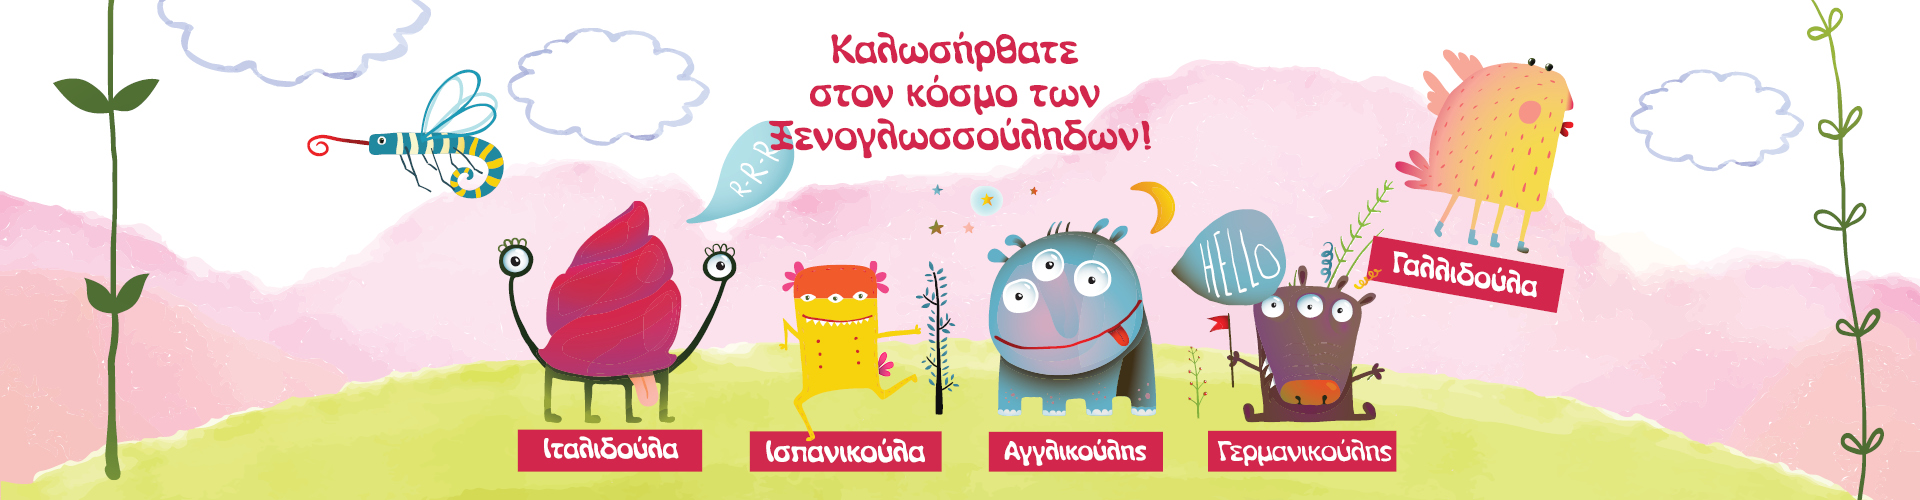 20161111-savvidis-hp-banner-kid-1920×500